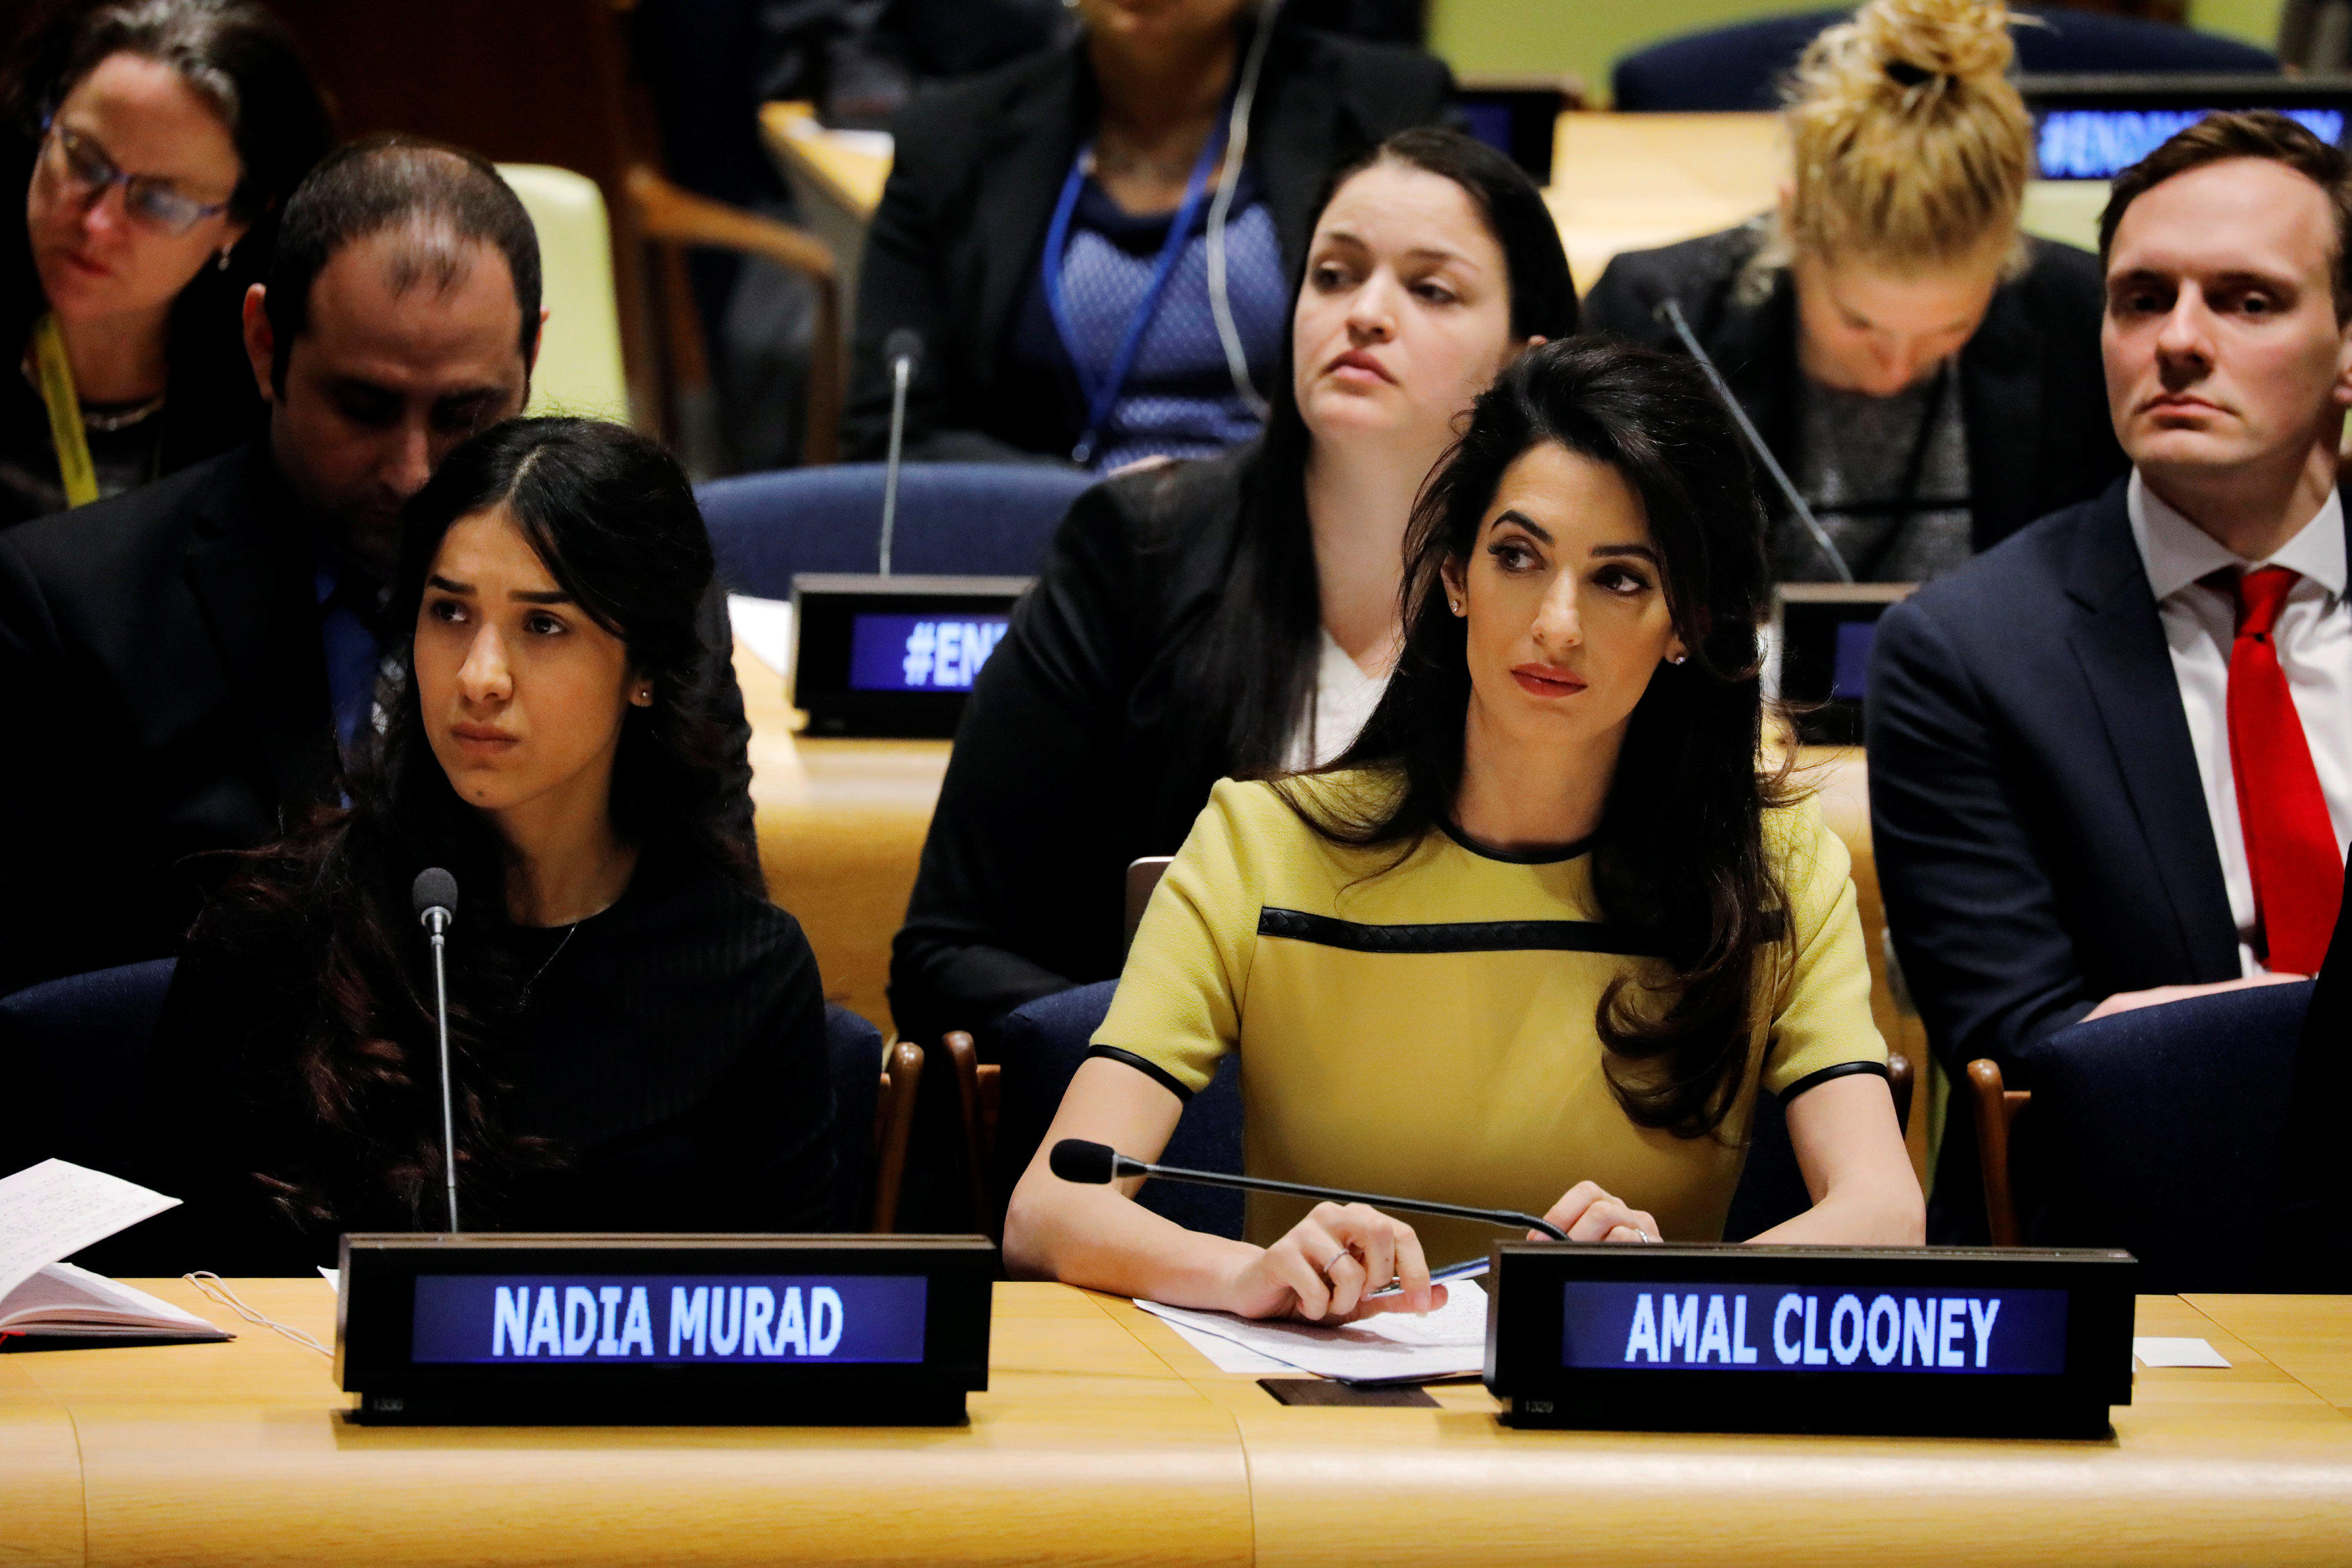 Amal Clooney to Iraq, U N : Don't let ISIS